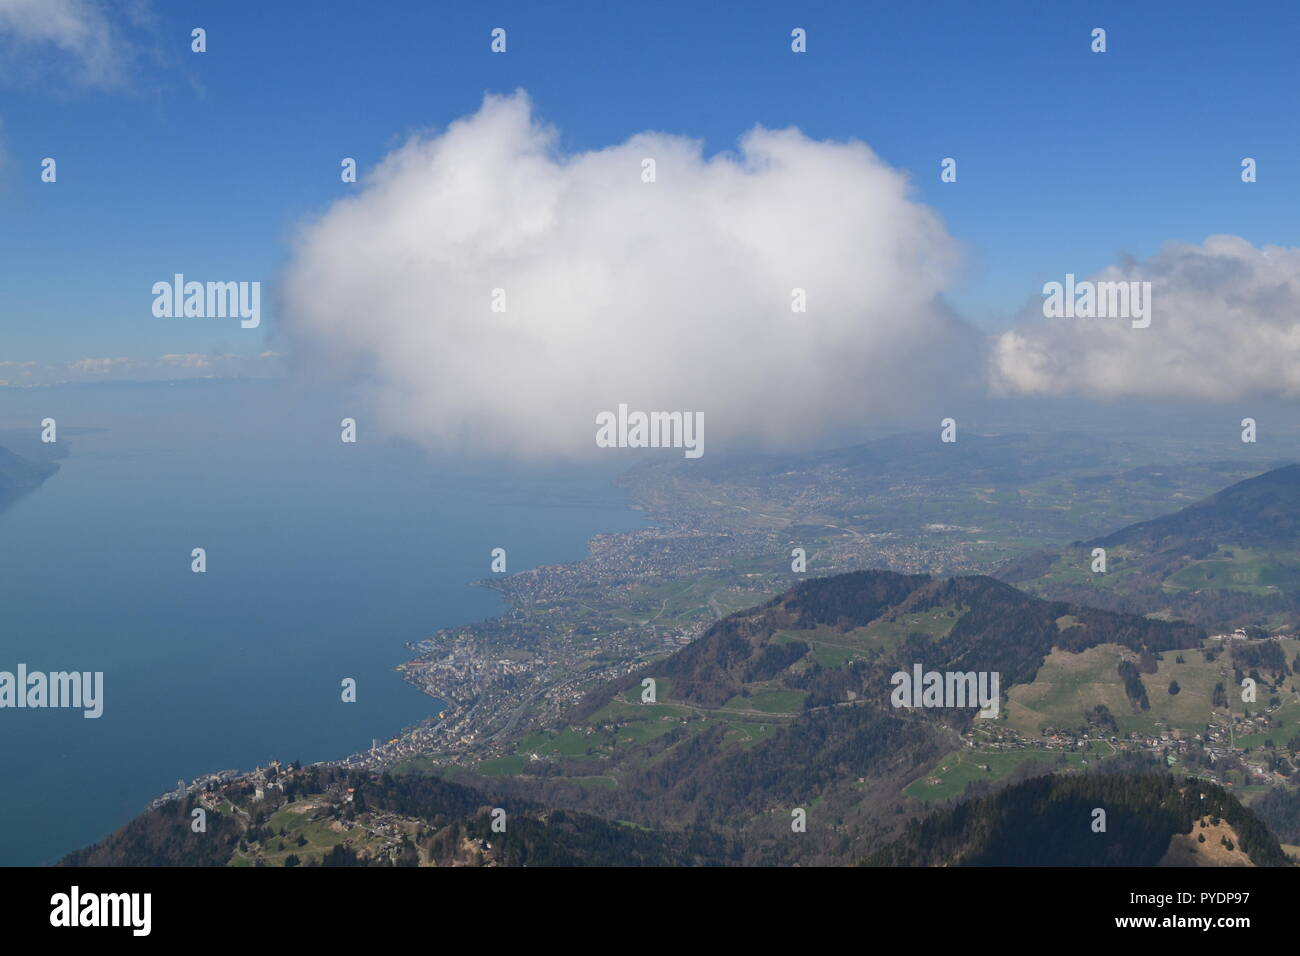 View from Les Rochers de Naye, reached by MOB train from Montreux. To west is Lake Geneva, Lausanne. A cumulus cloud floats past. - Stock Image